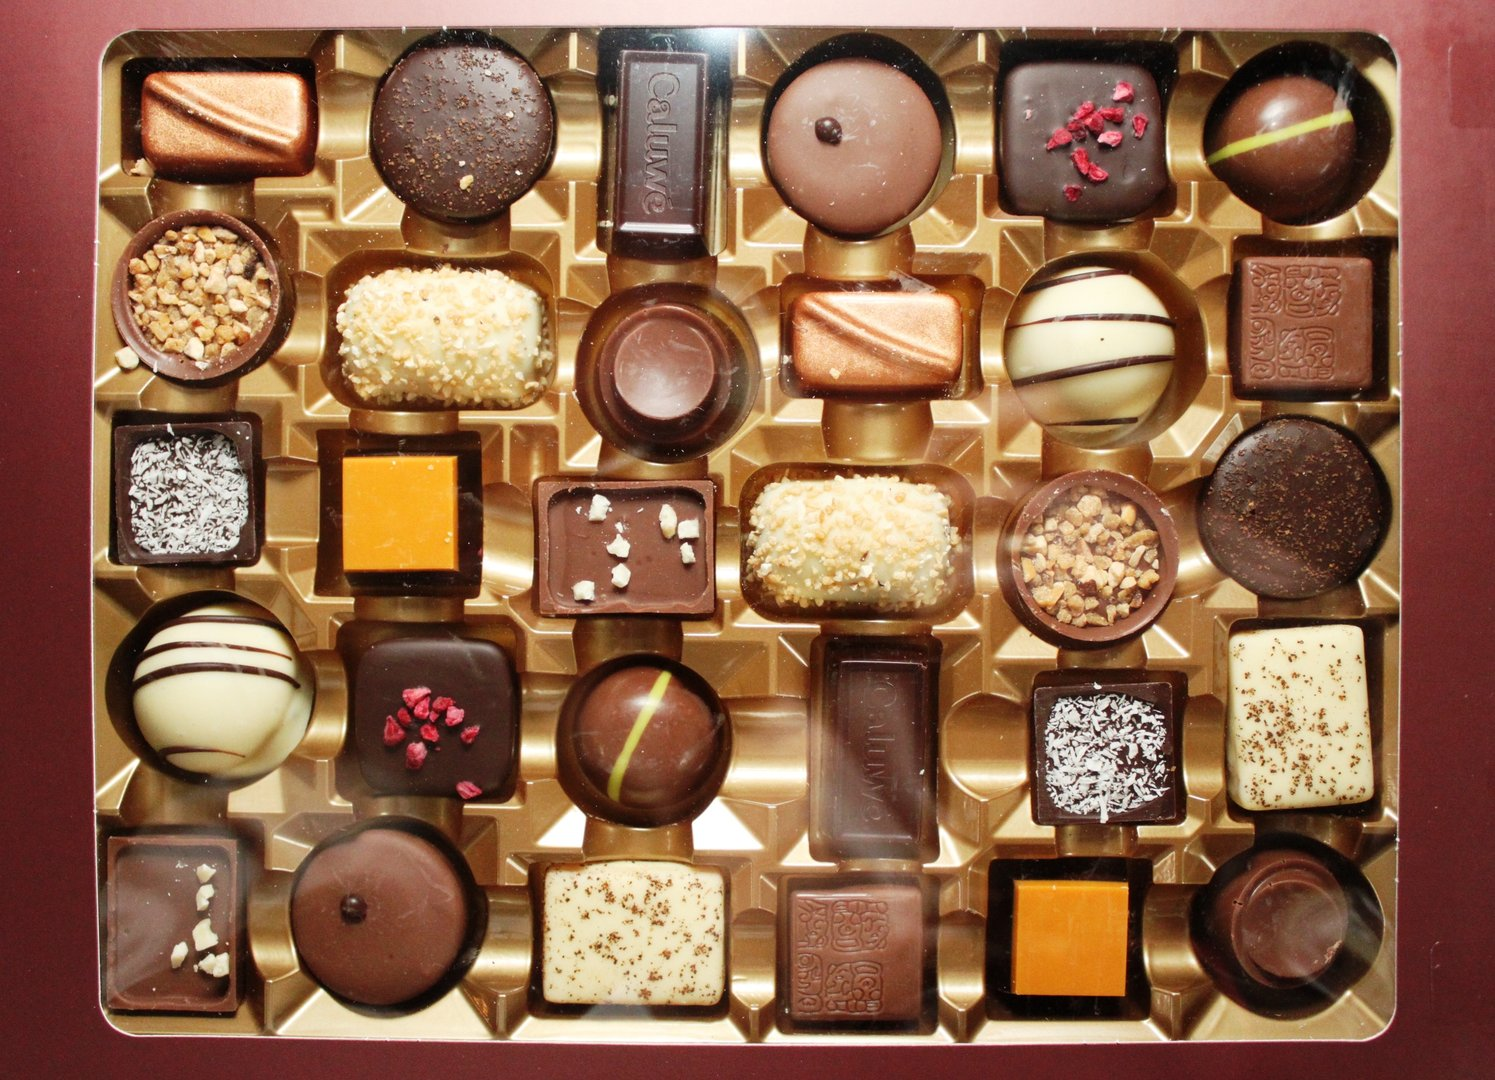 Caluwe Artisan Belgium Chocolates; selection may vary from image